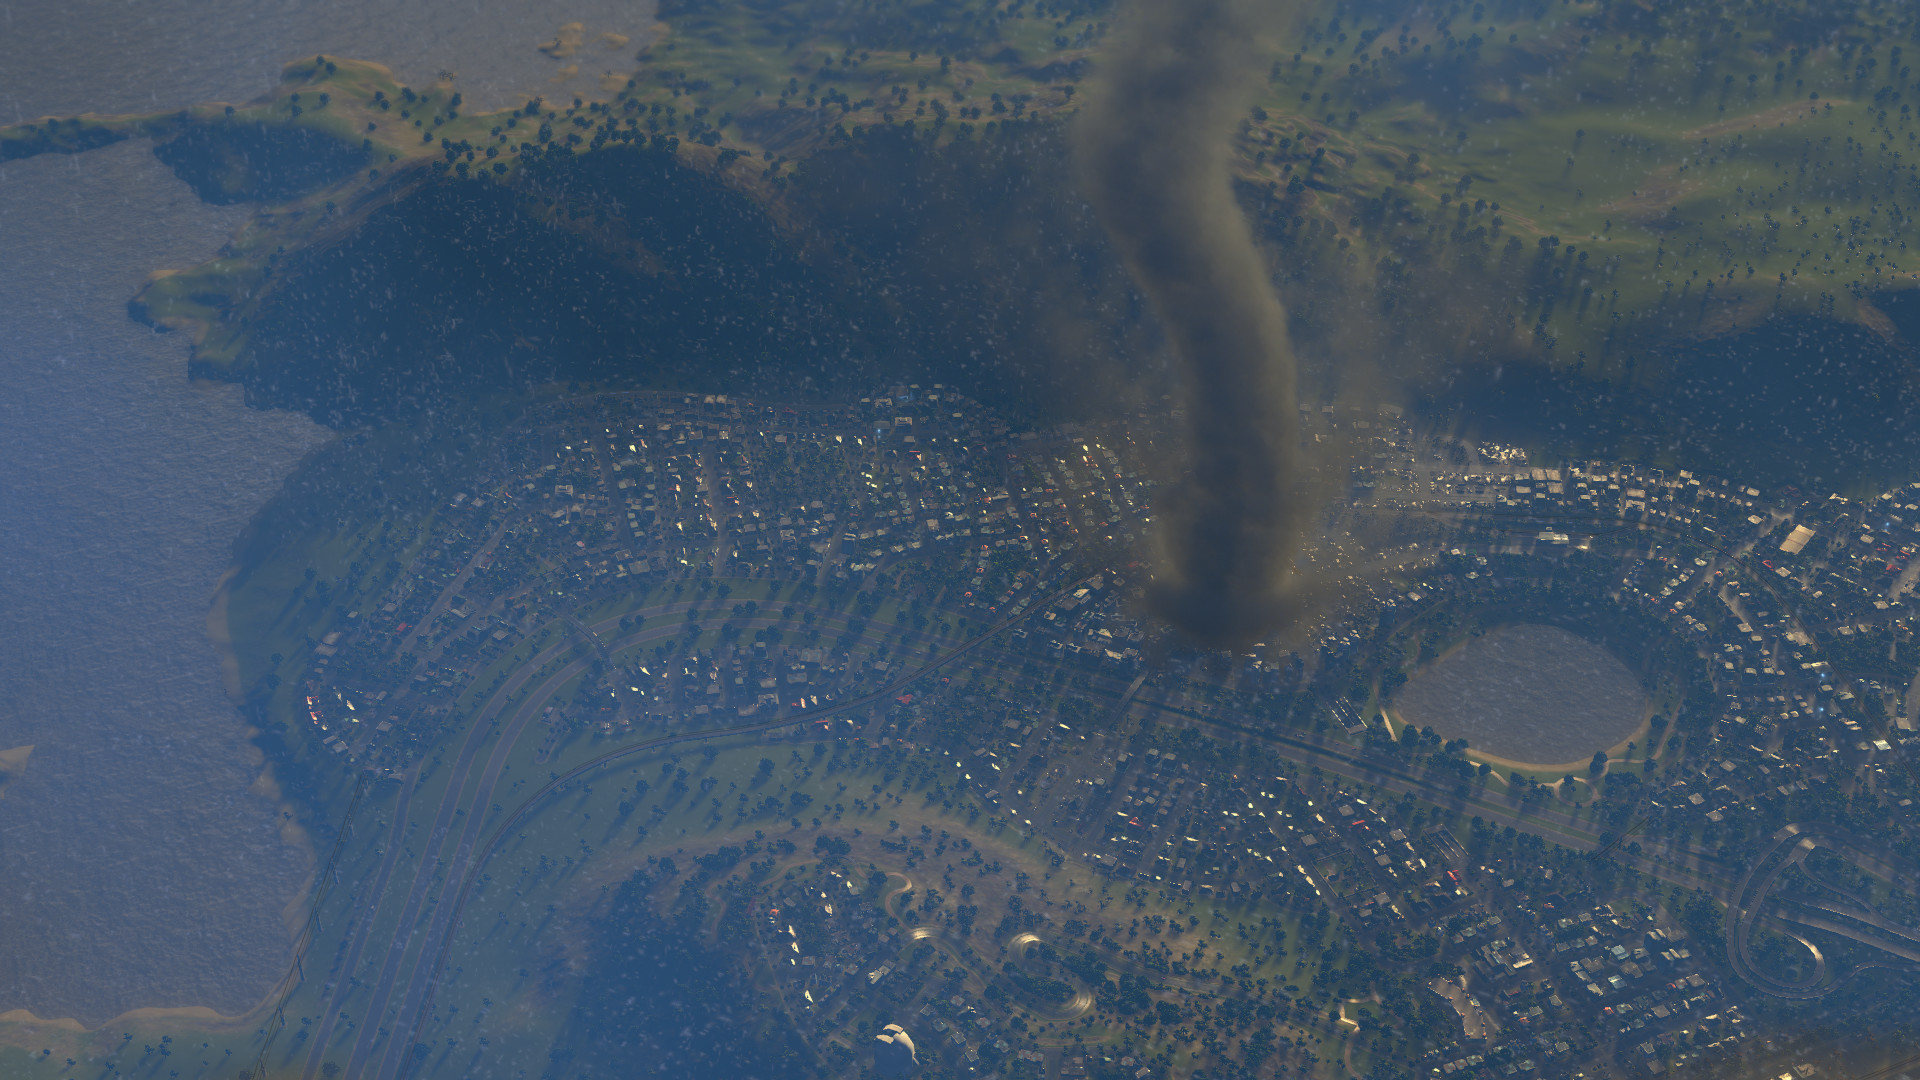 Cities Skylines Maps Download - helpside's diary